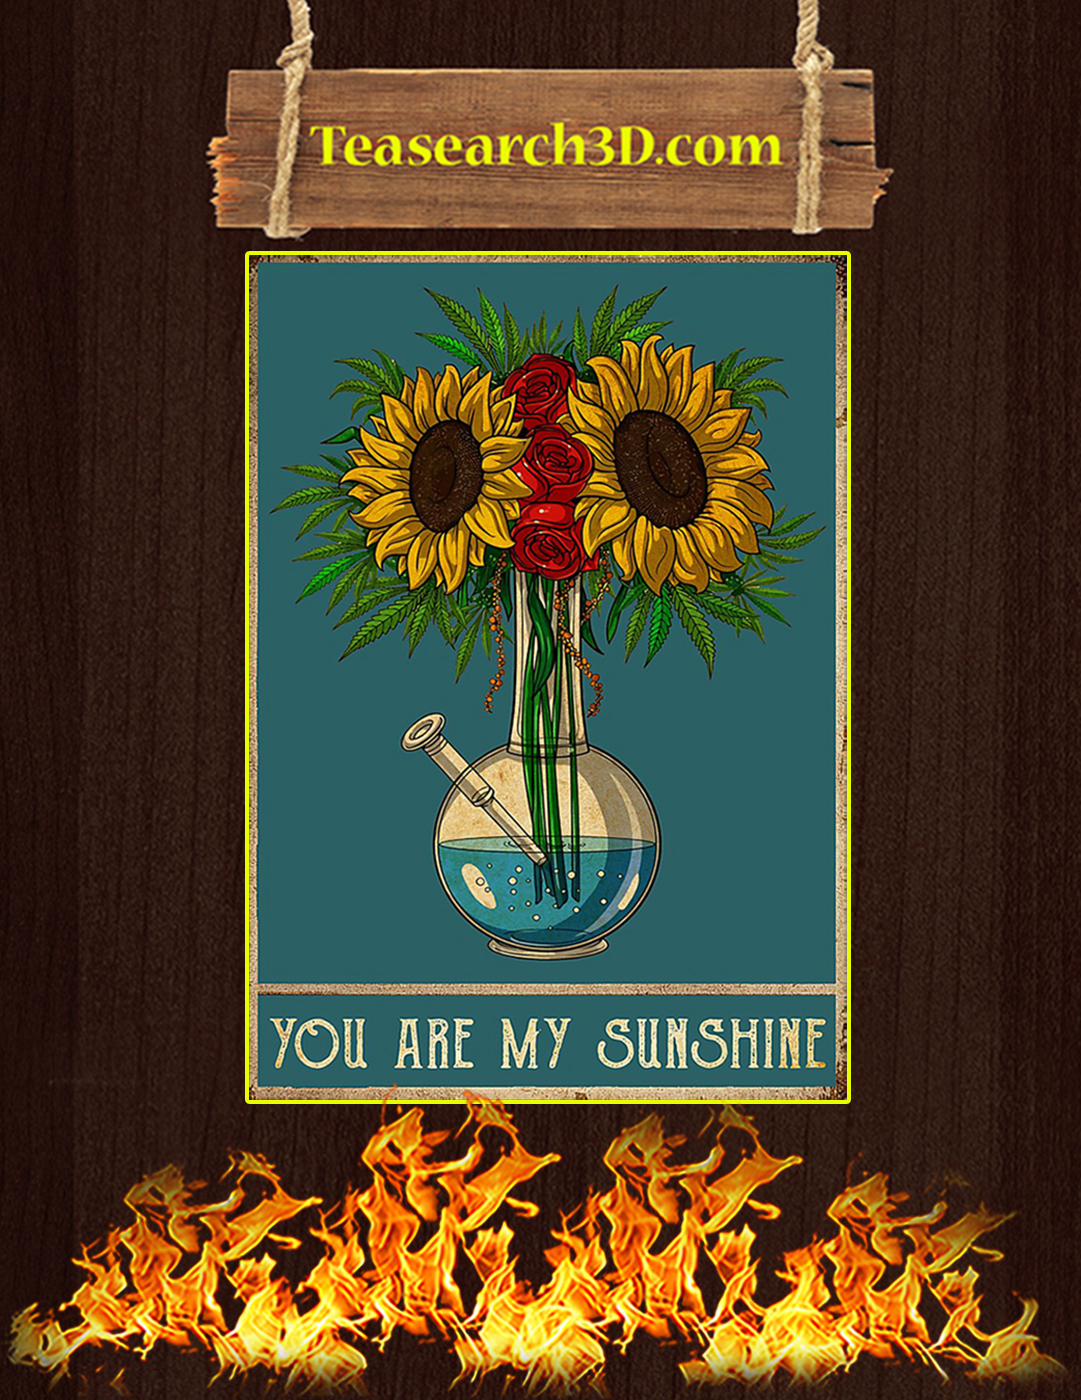 Sunflower rose weed you are my sunshine poster A2